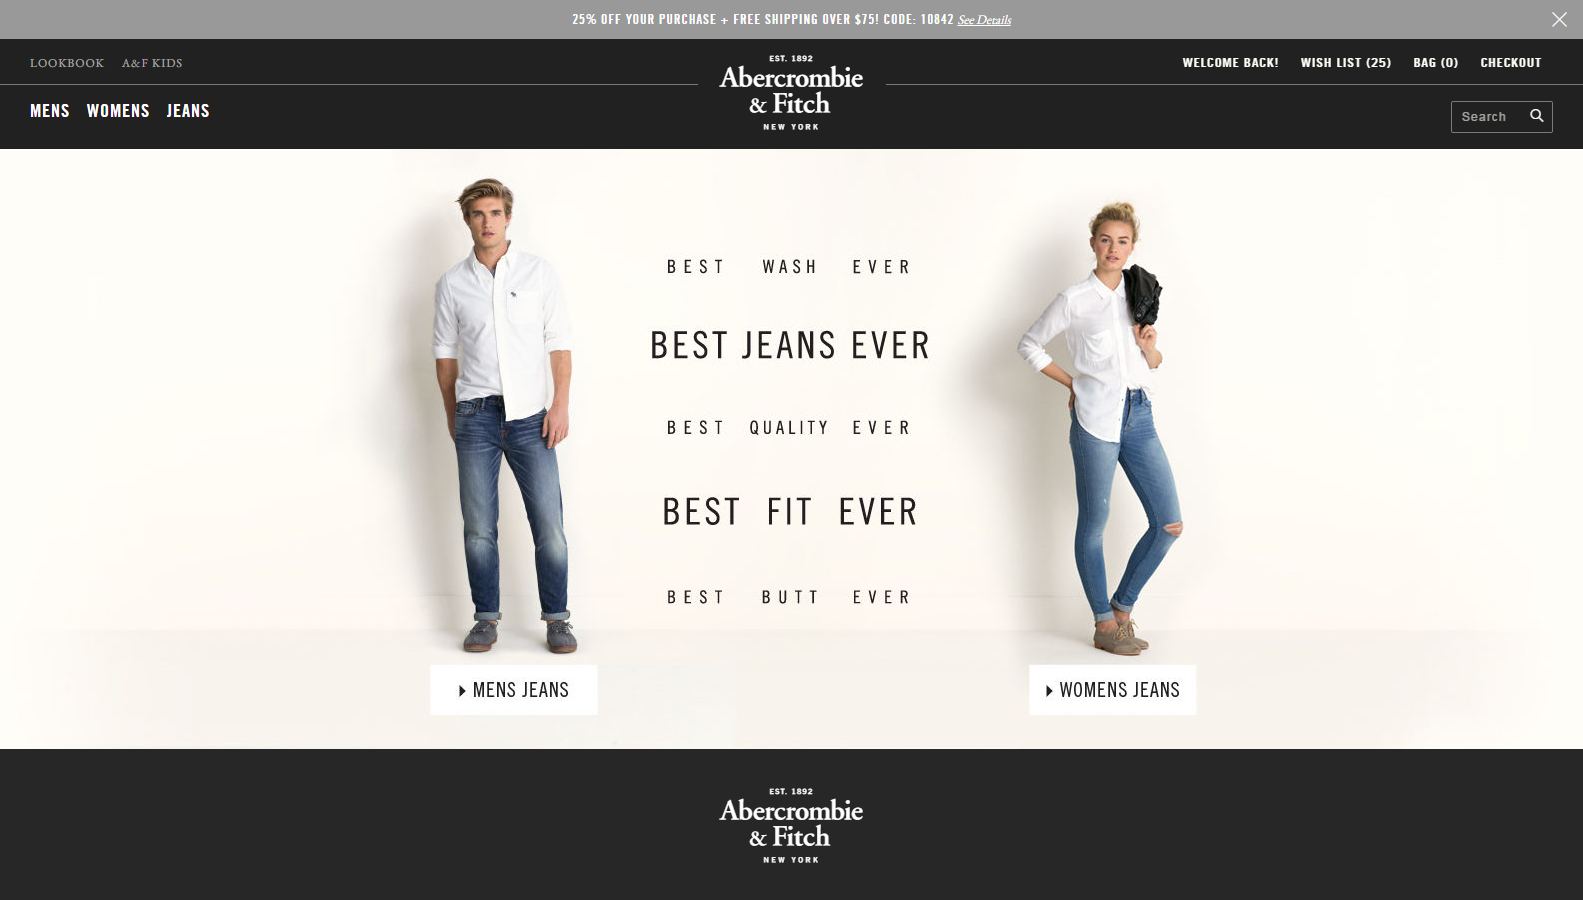 Shop womens clothing at Abercrombie & Fitch. You'll find womens clothes such as jeans, dresses, tees, and more.